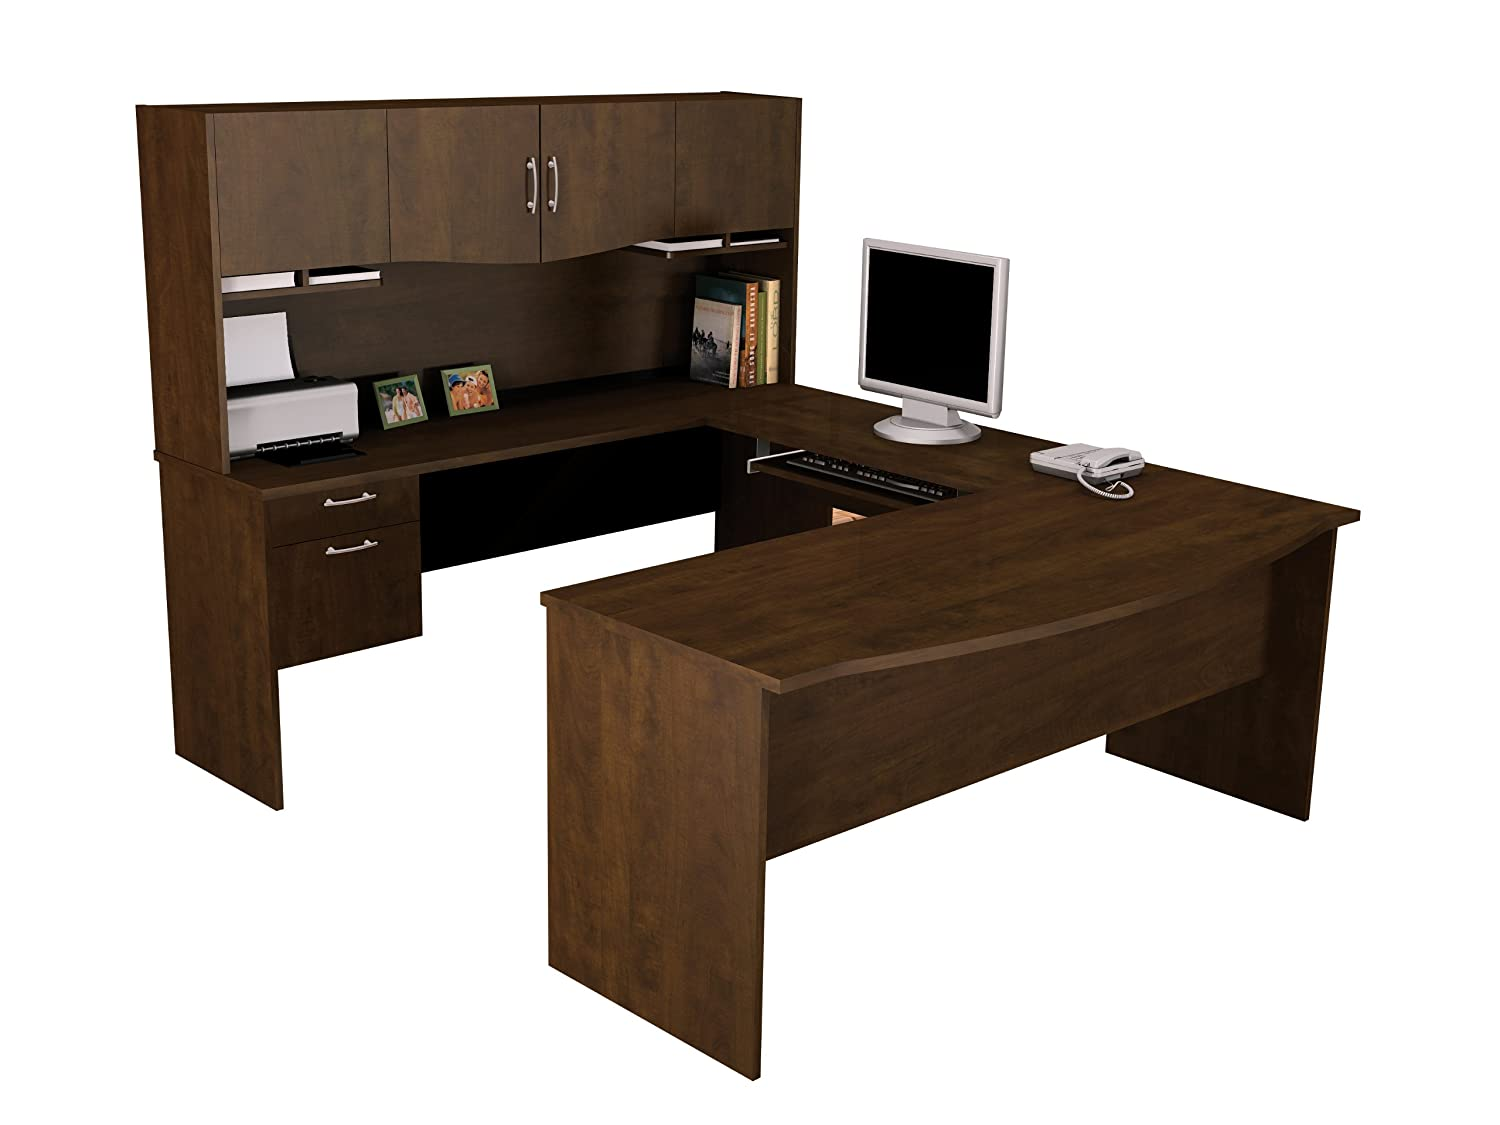 Amazon.com: Bestar Harmony U-shaped Workstation, Chocolate ...